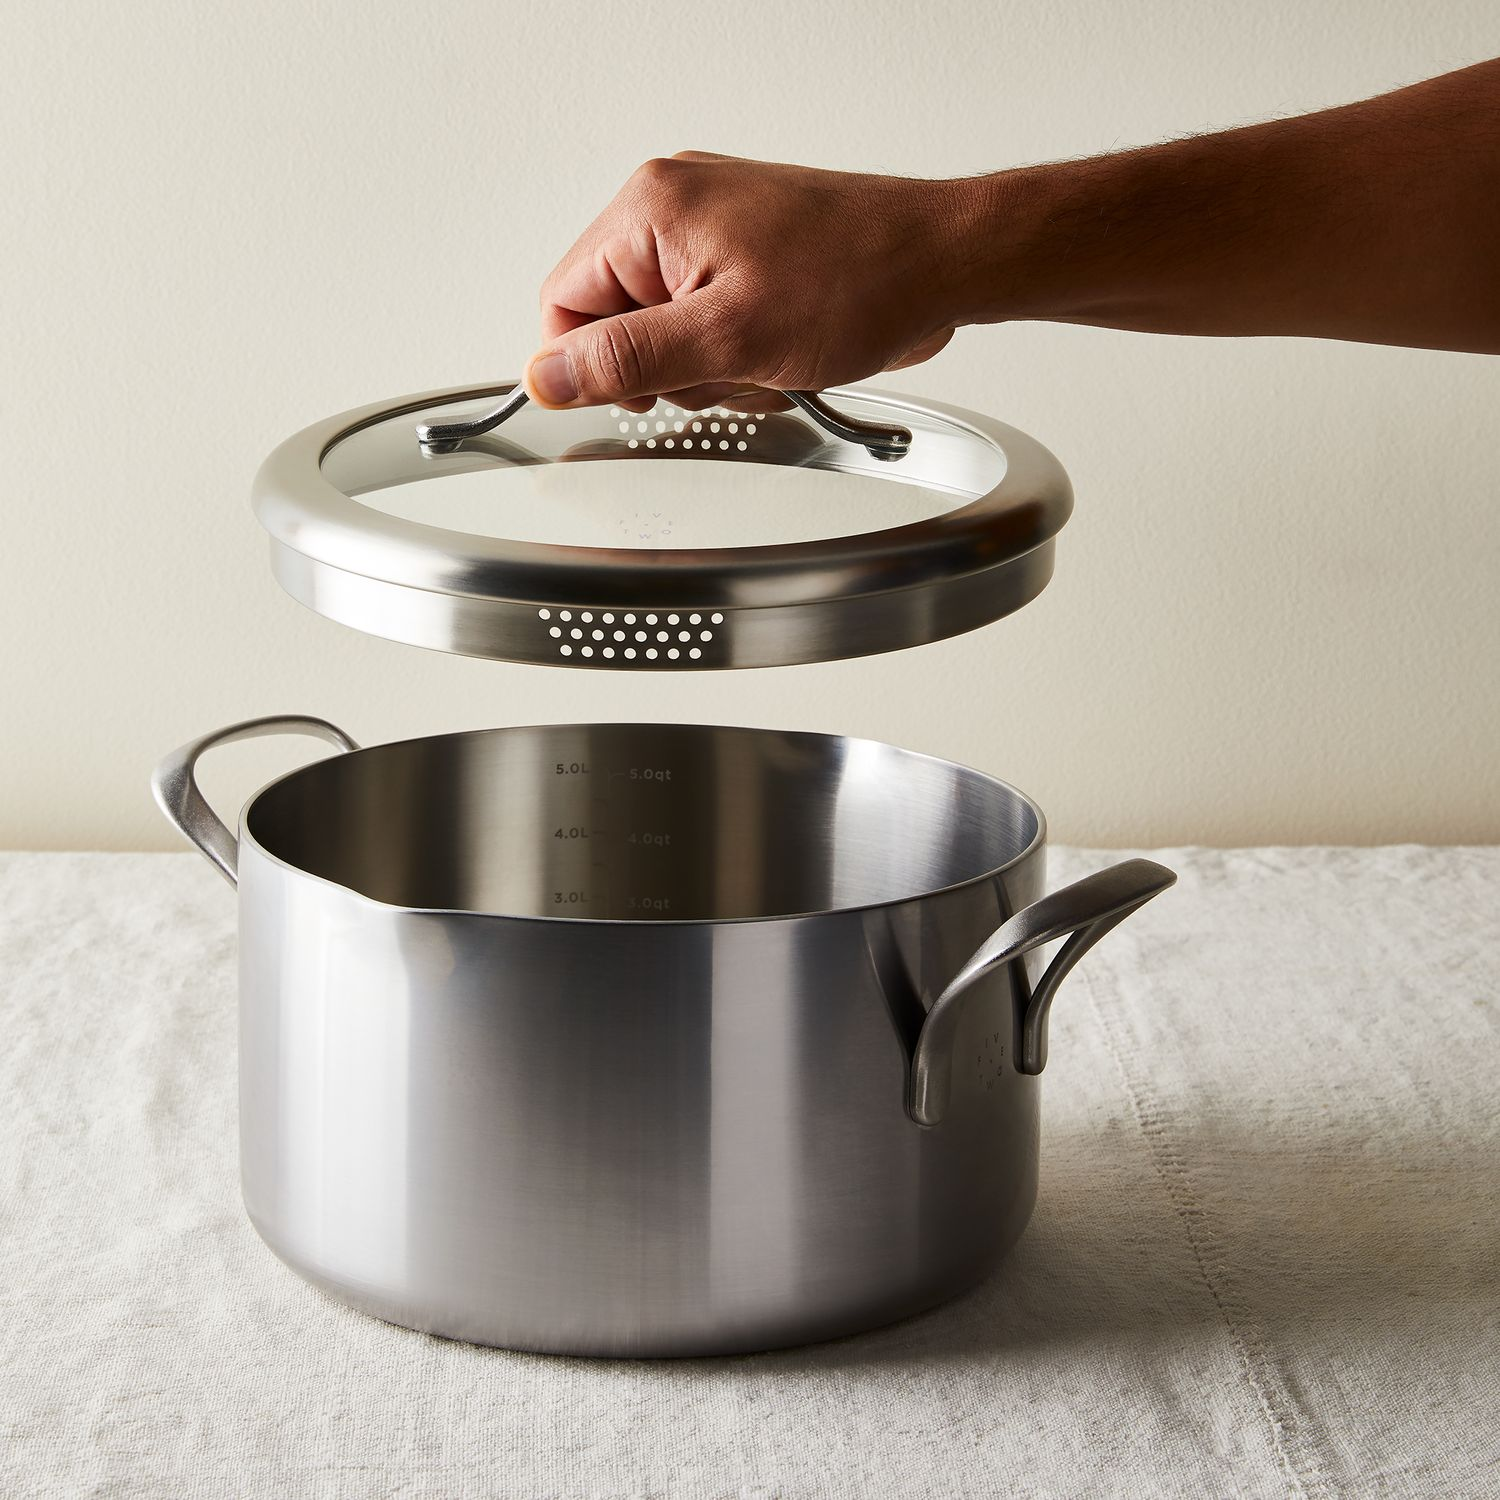 Five Two Essential Cookware Set From Food52 Nonstick